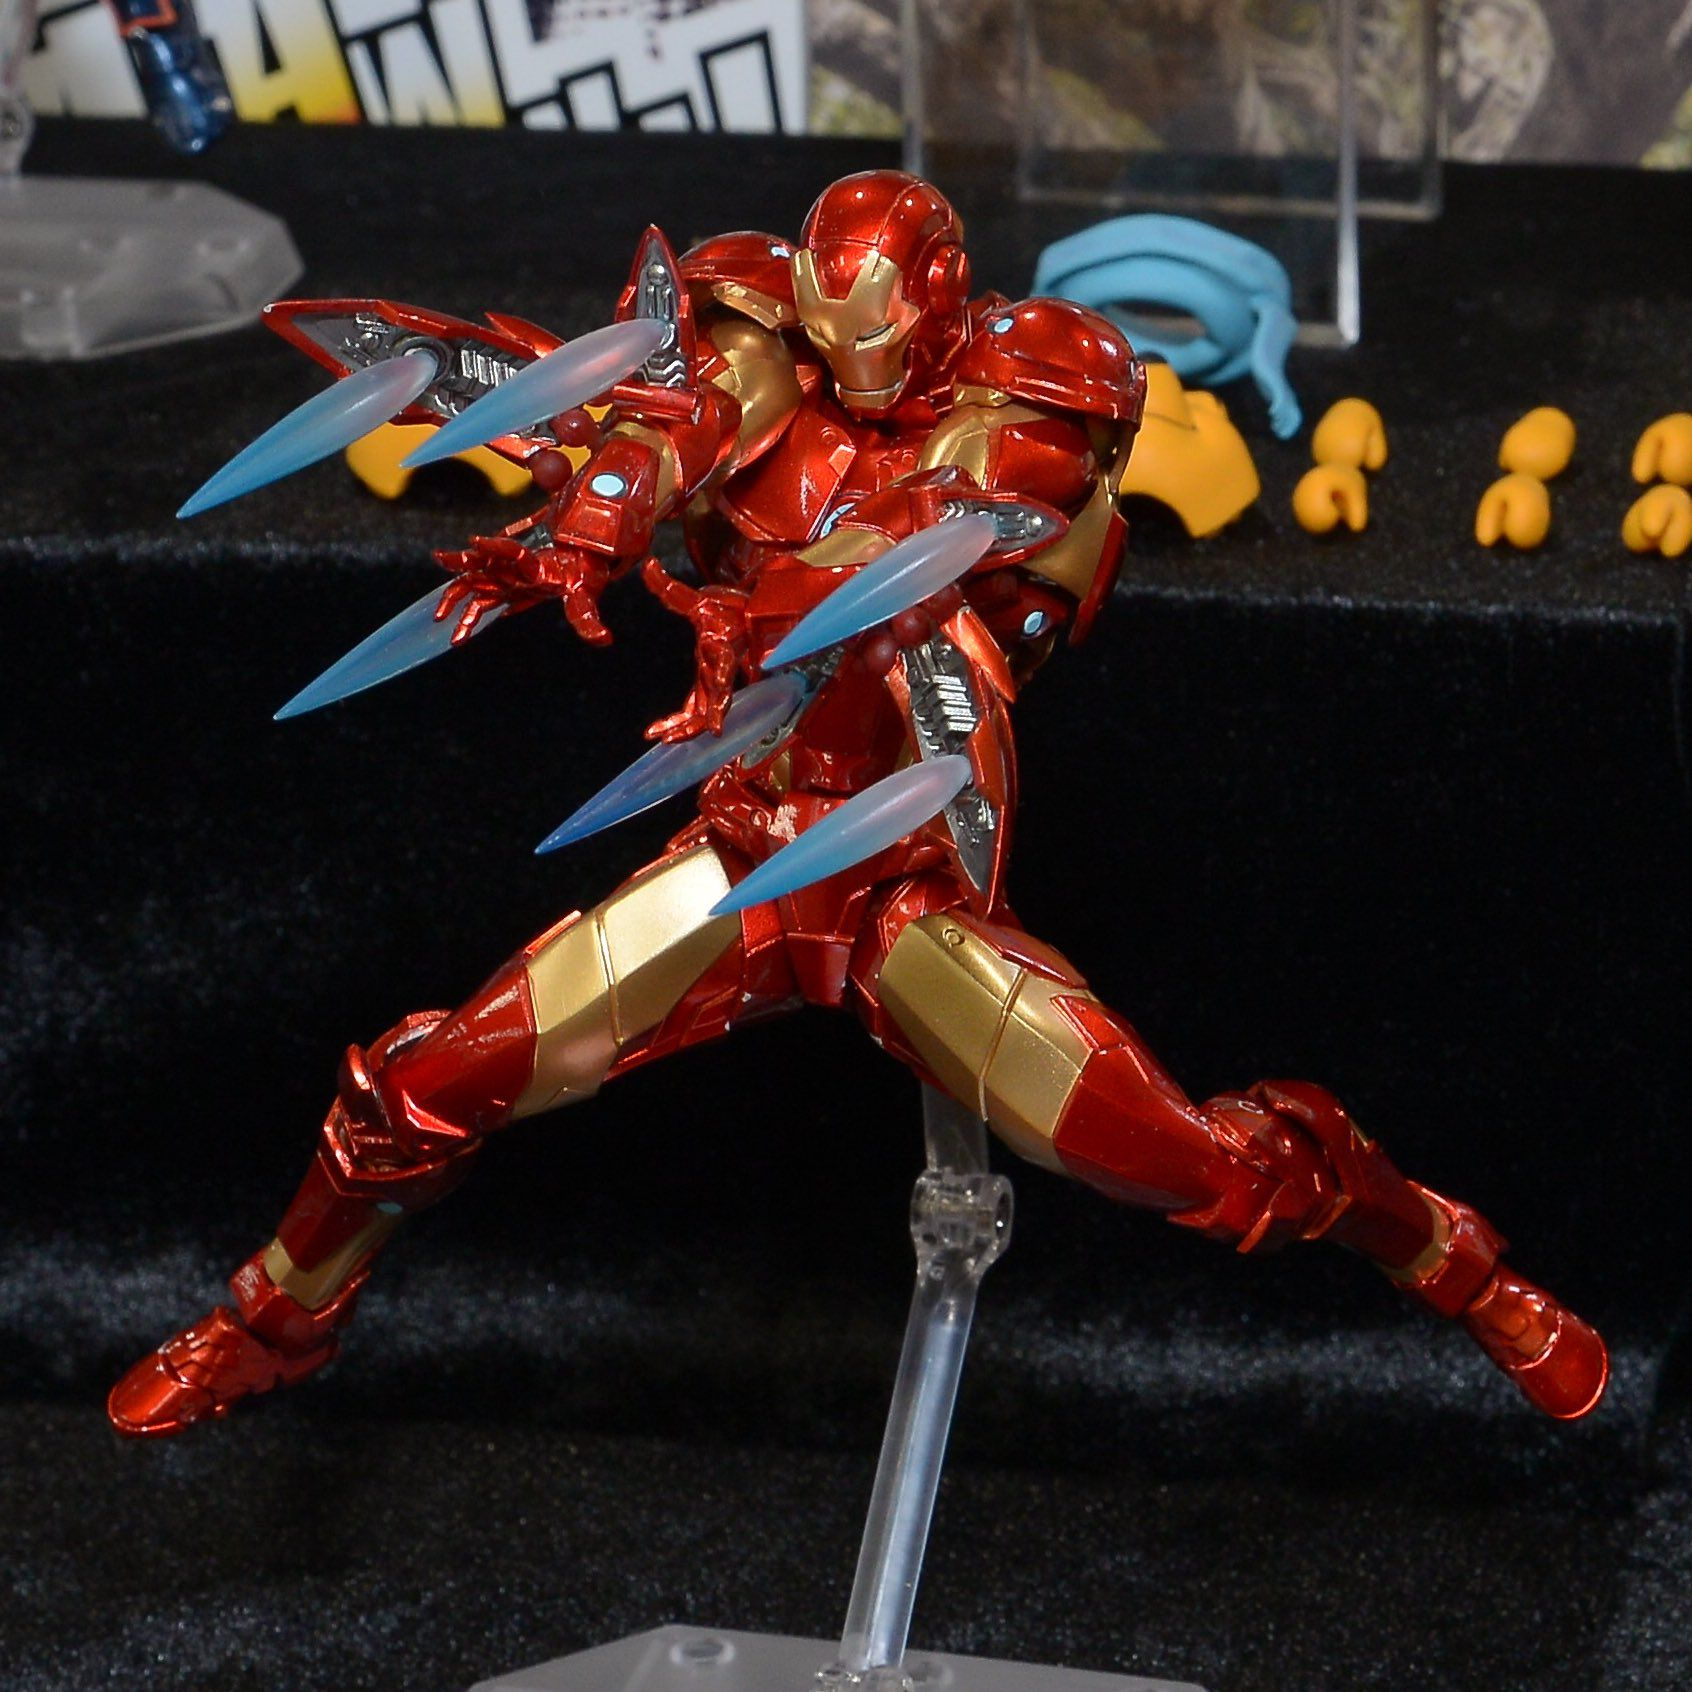 Revoltech Iron Man Mark 37 Bleeding Edge Armor The Toyark News Figura De Ação Super Herói Herois